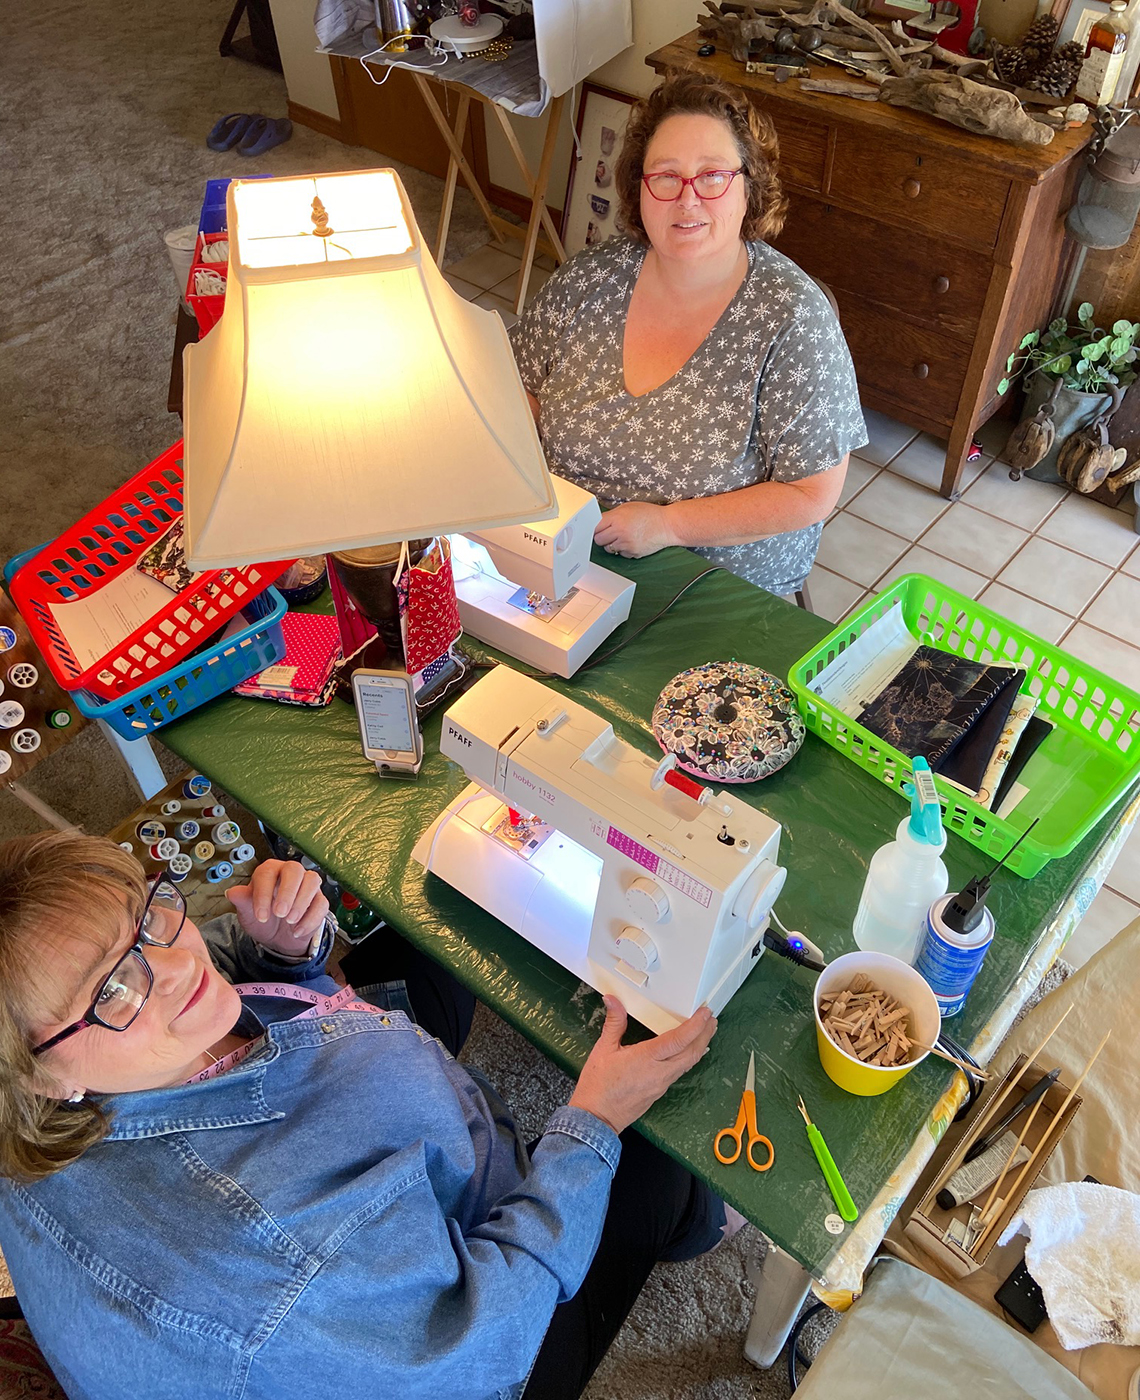 becky smith and her sister debbie cobb smile while looking up from their sewing machines